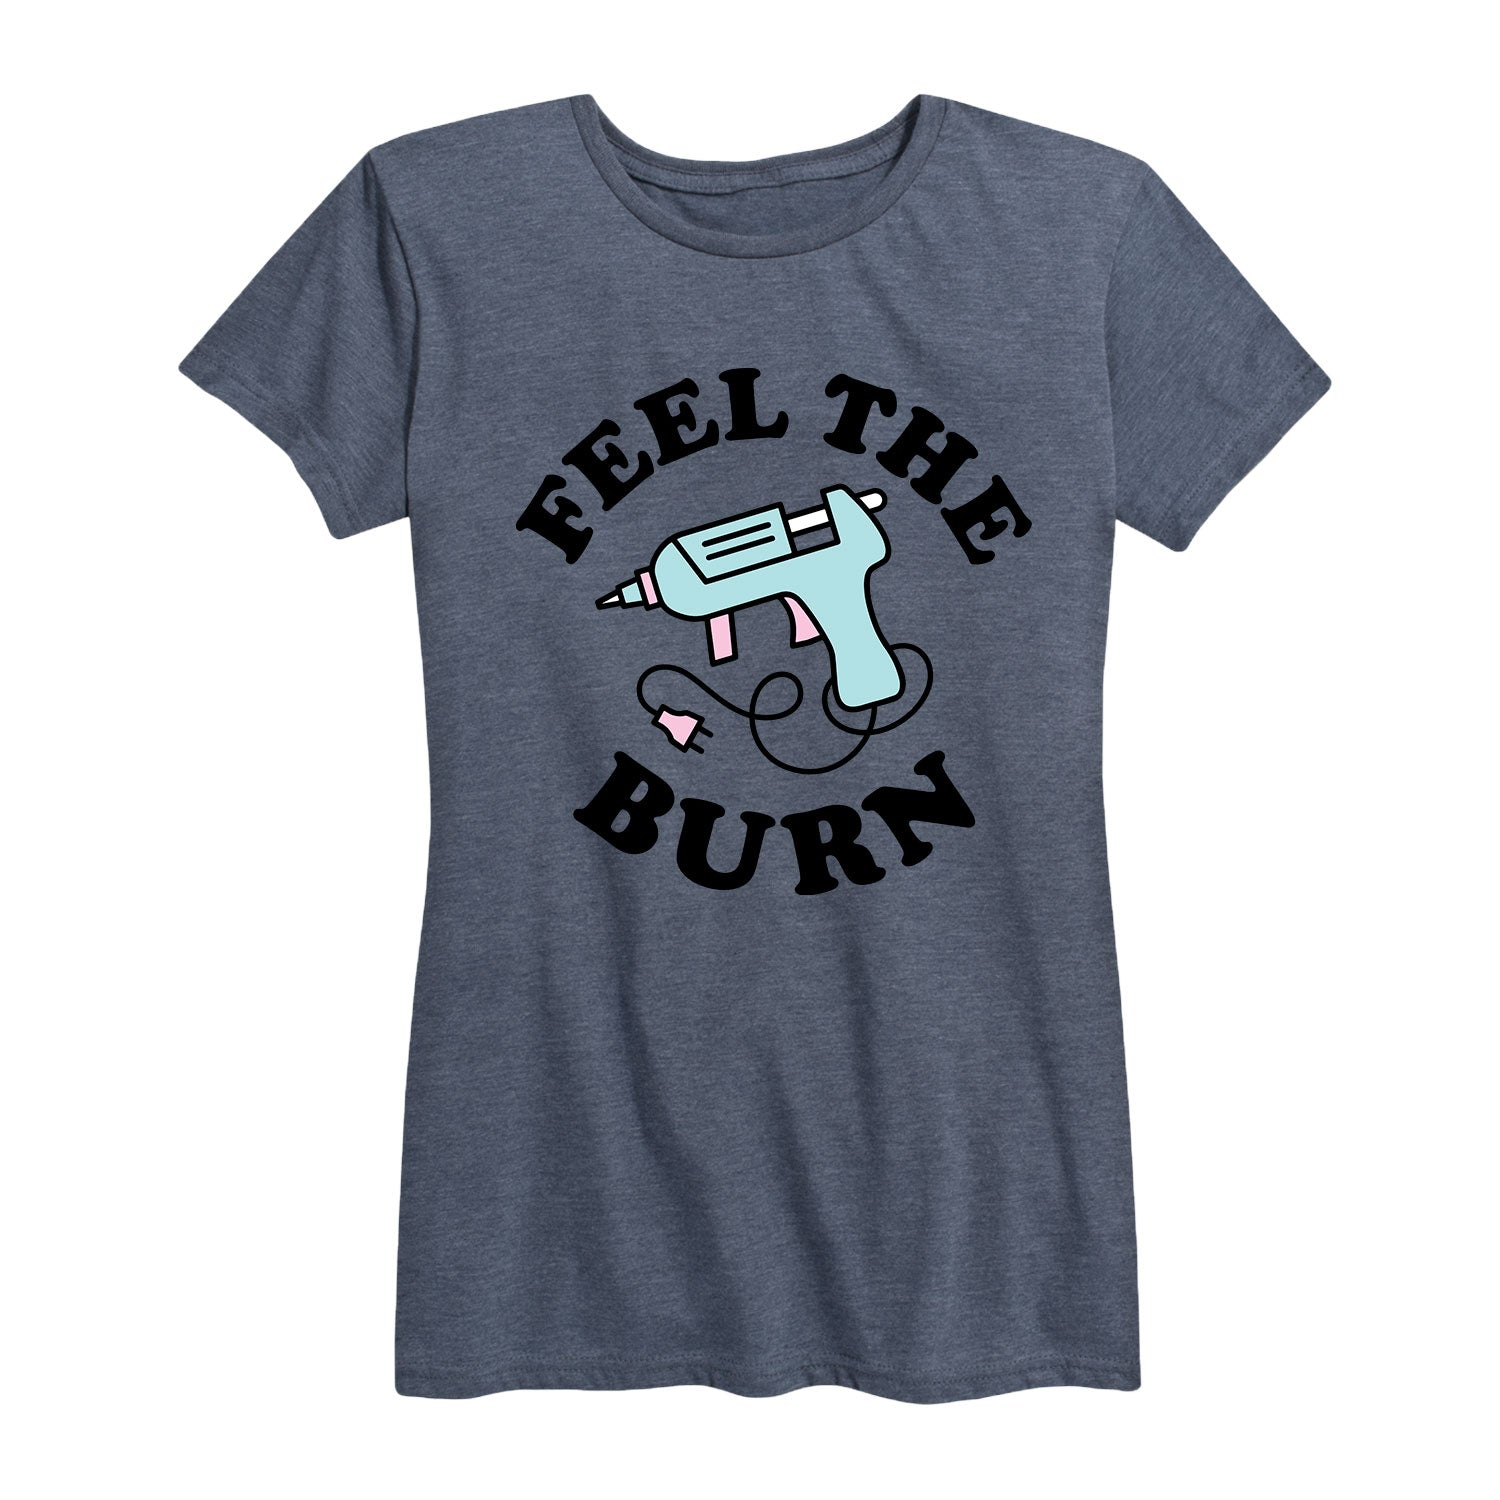 Feel The Burn - Women's Short Sleeve T-Shirt